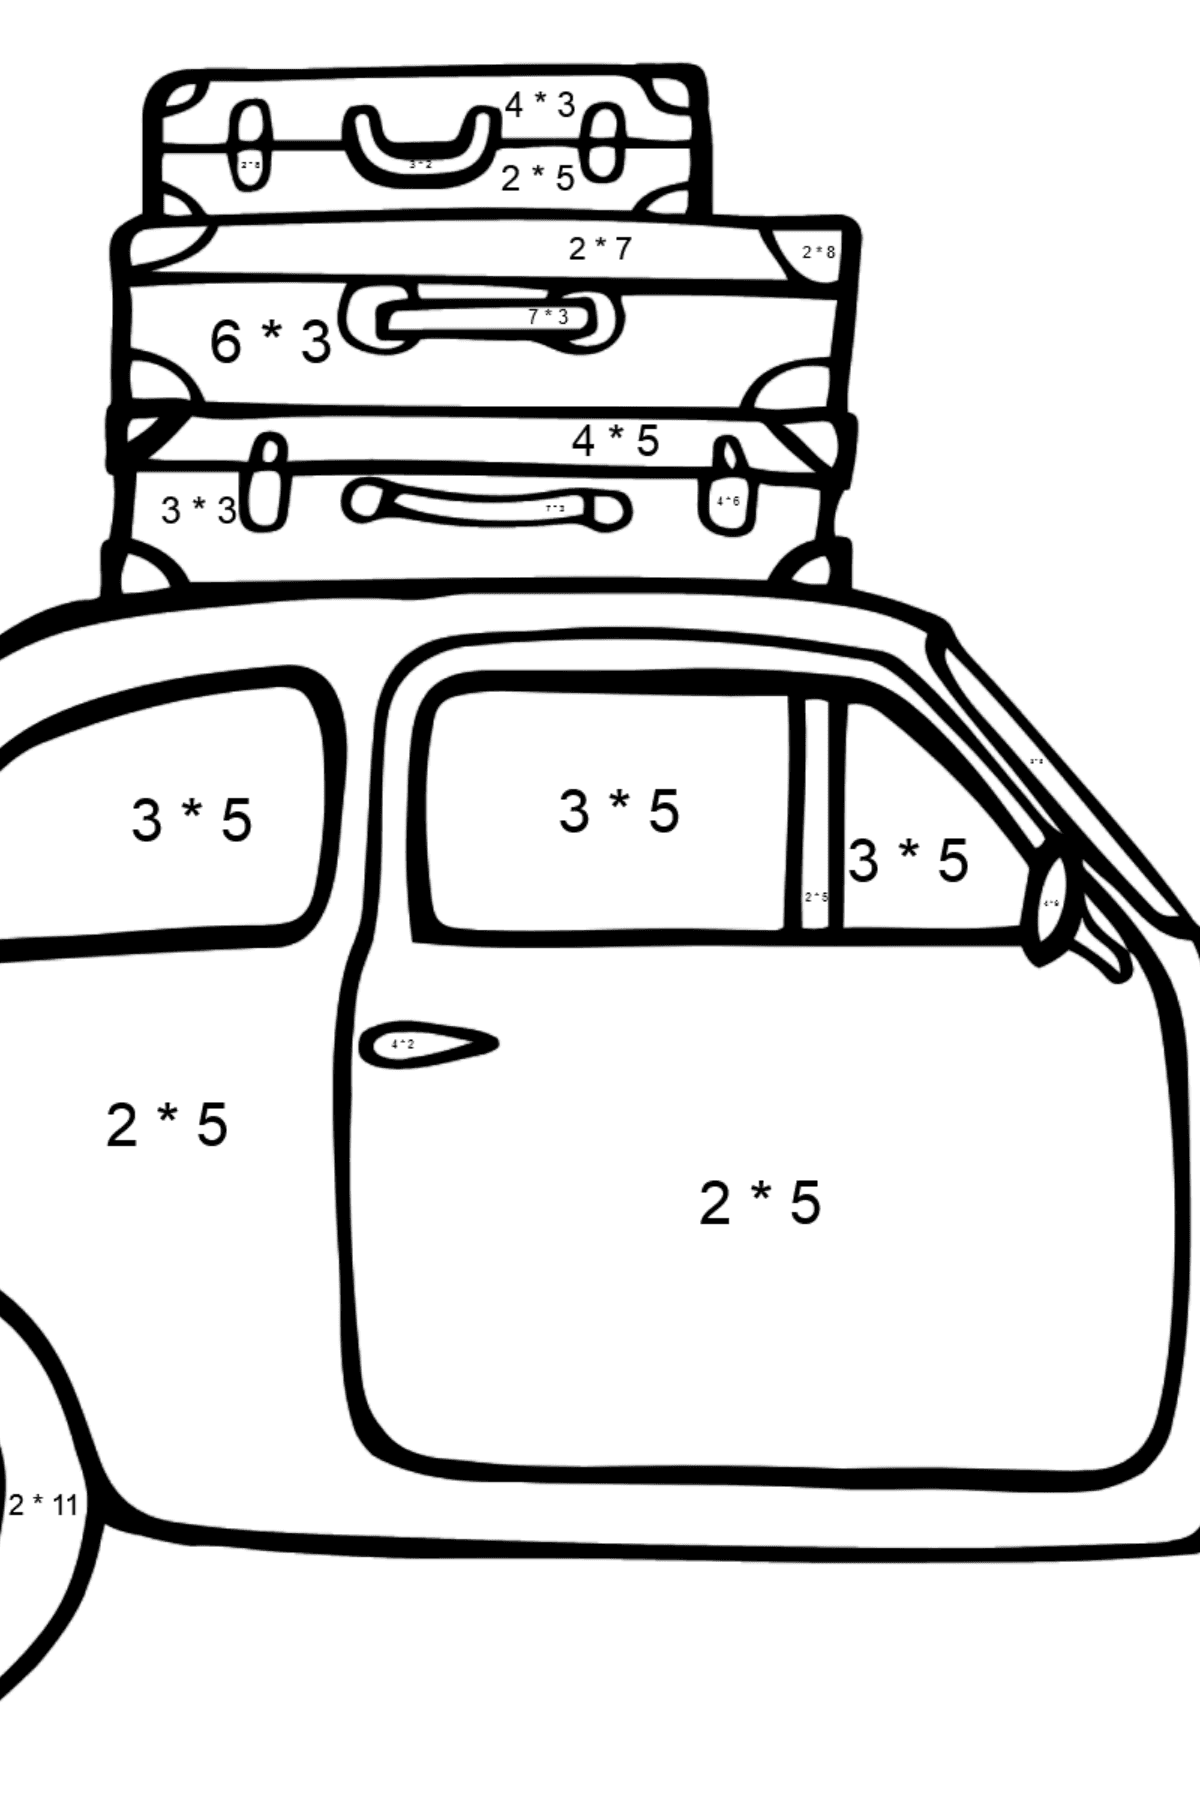 Fiat 600 car coloring page - Math Coloring - Multiplication for Kids